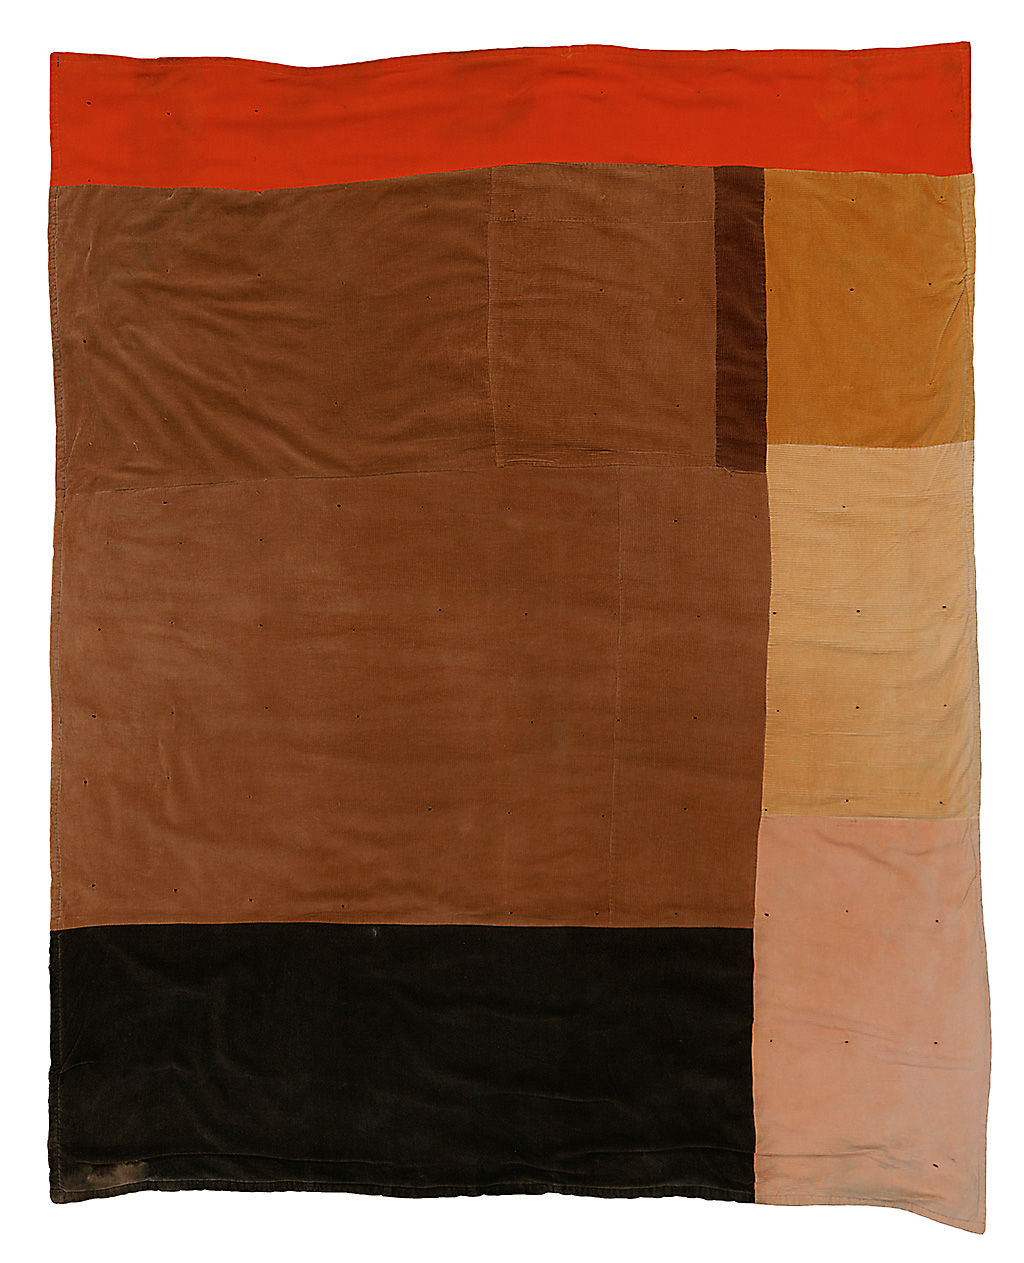 Quilt by China Pettway of Gee's Bend Quiltmakers